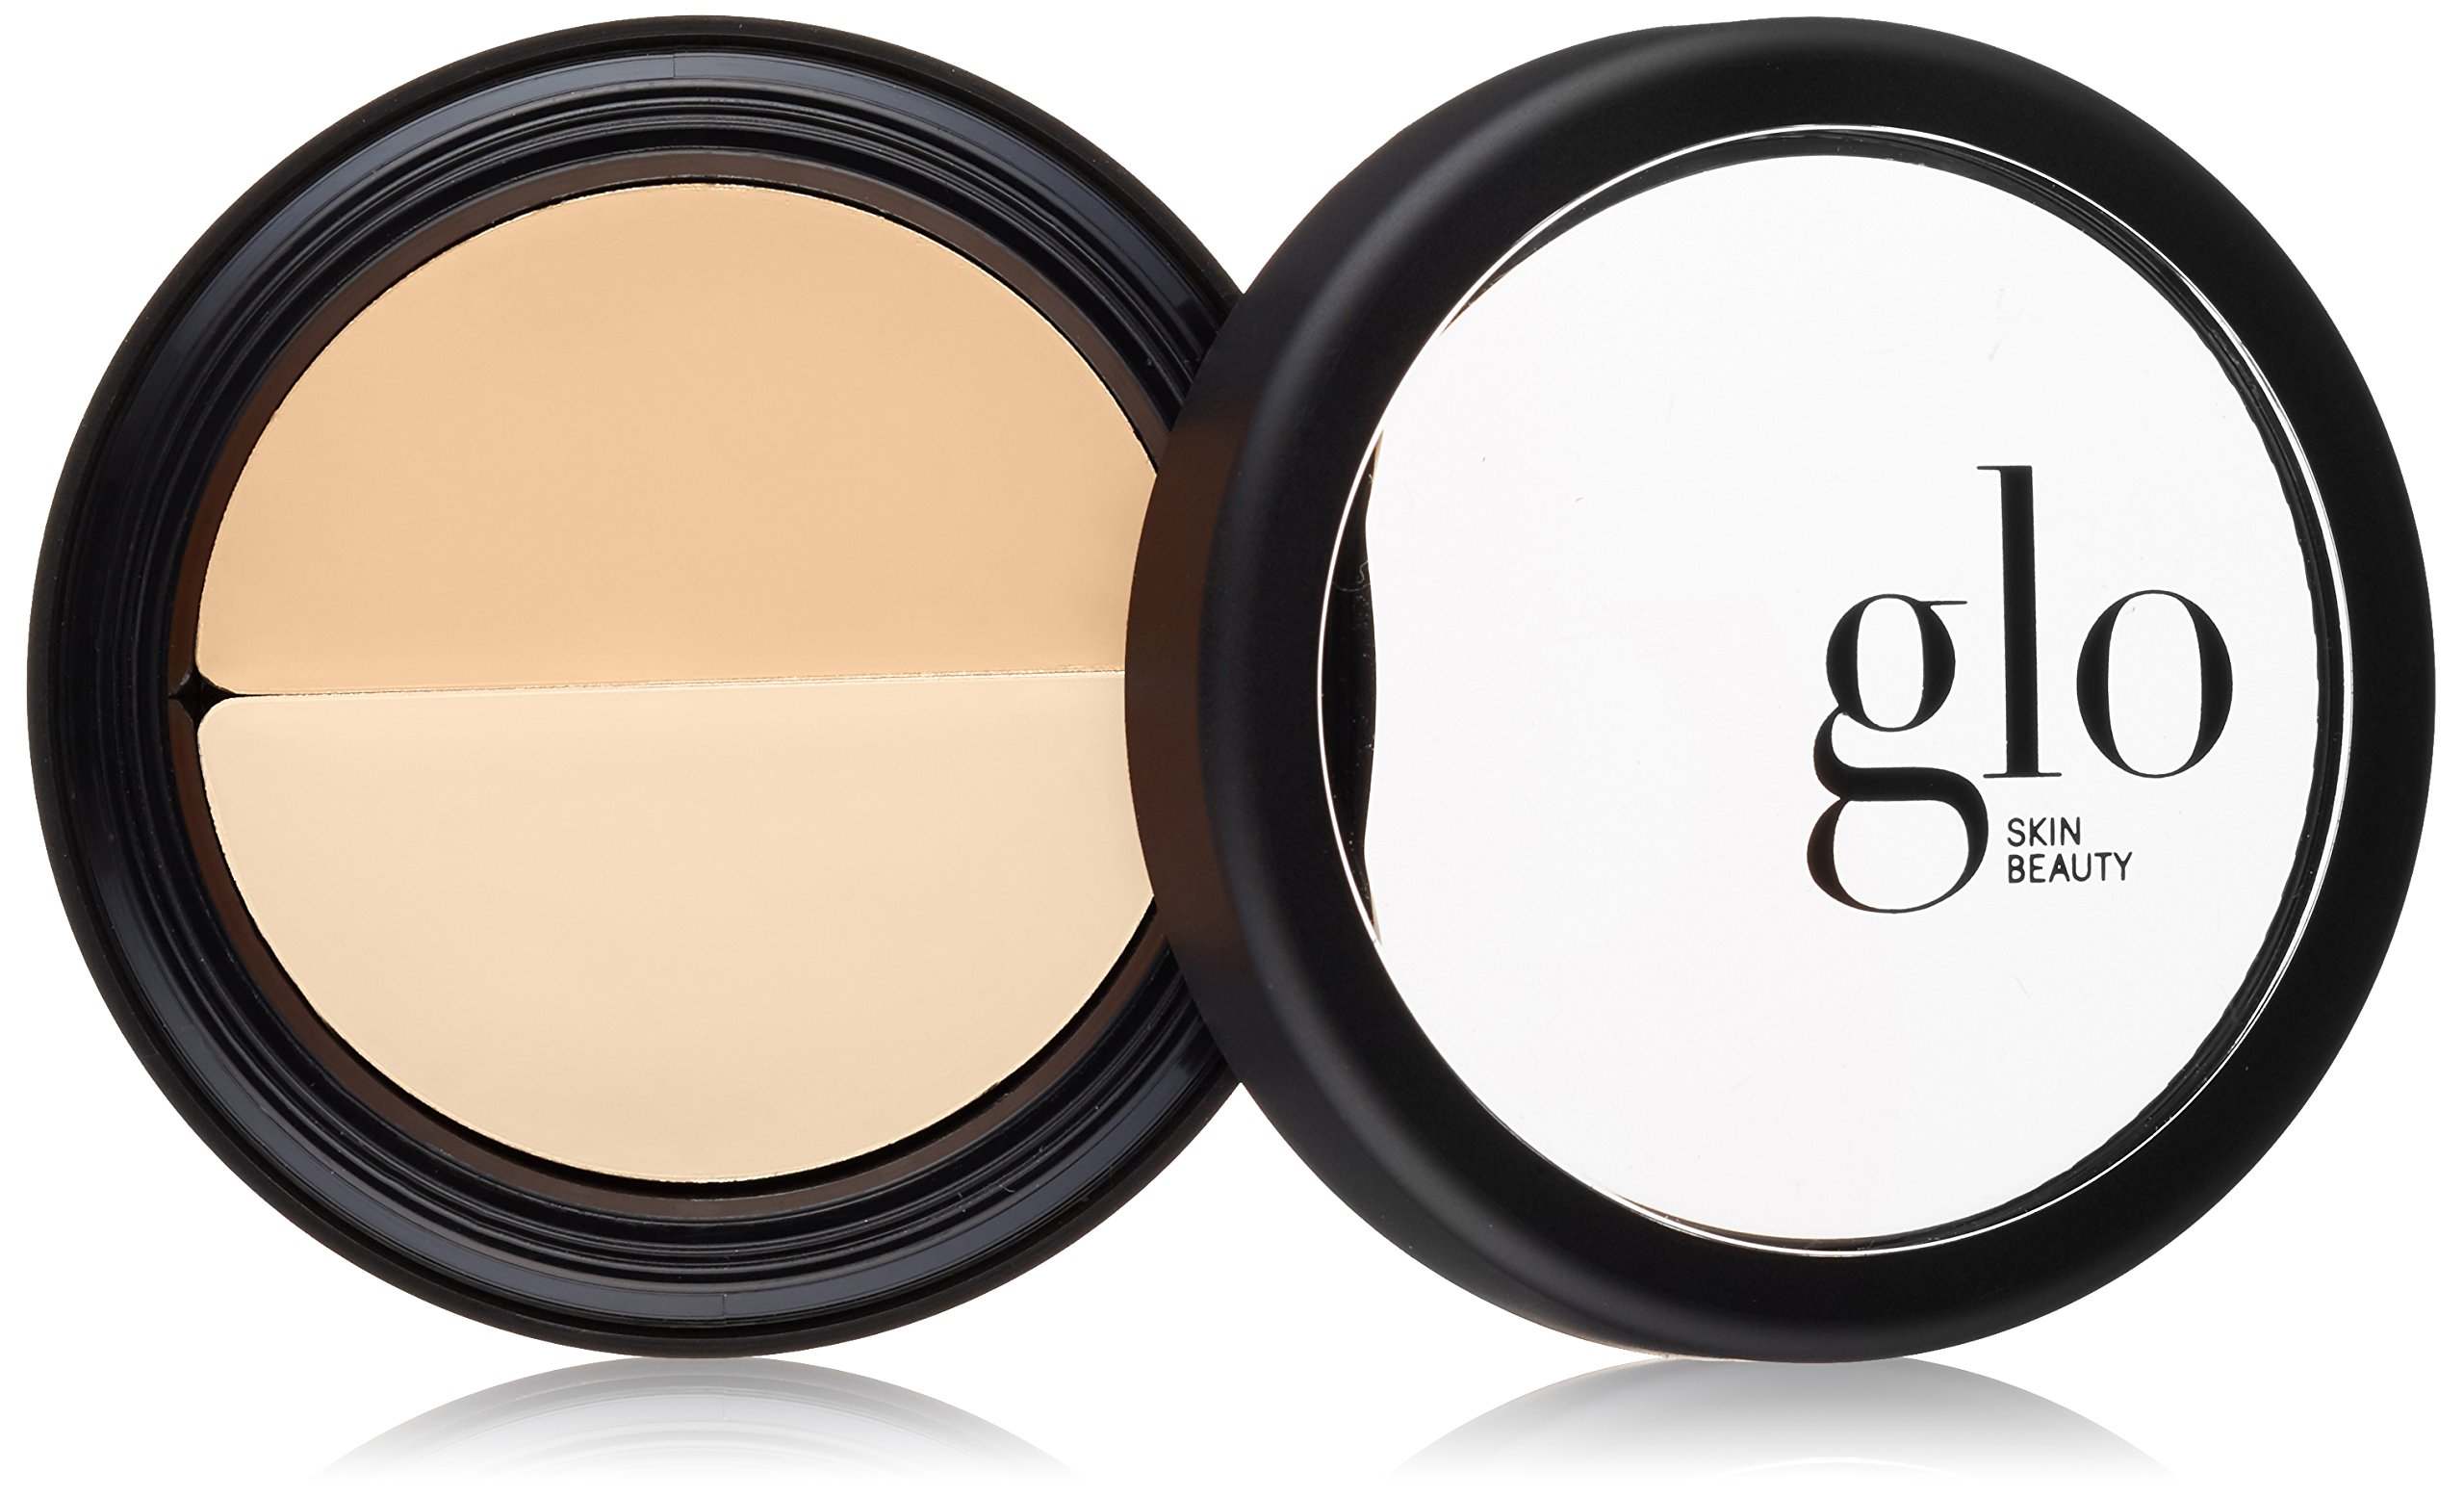 Glo Skin Beauty Under Eye Concealer Duo in Golden | Correct and Conceal Dark Circles, Wrinkles, and Redness | 4 Shades by Glo Skin Beauty